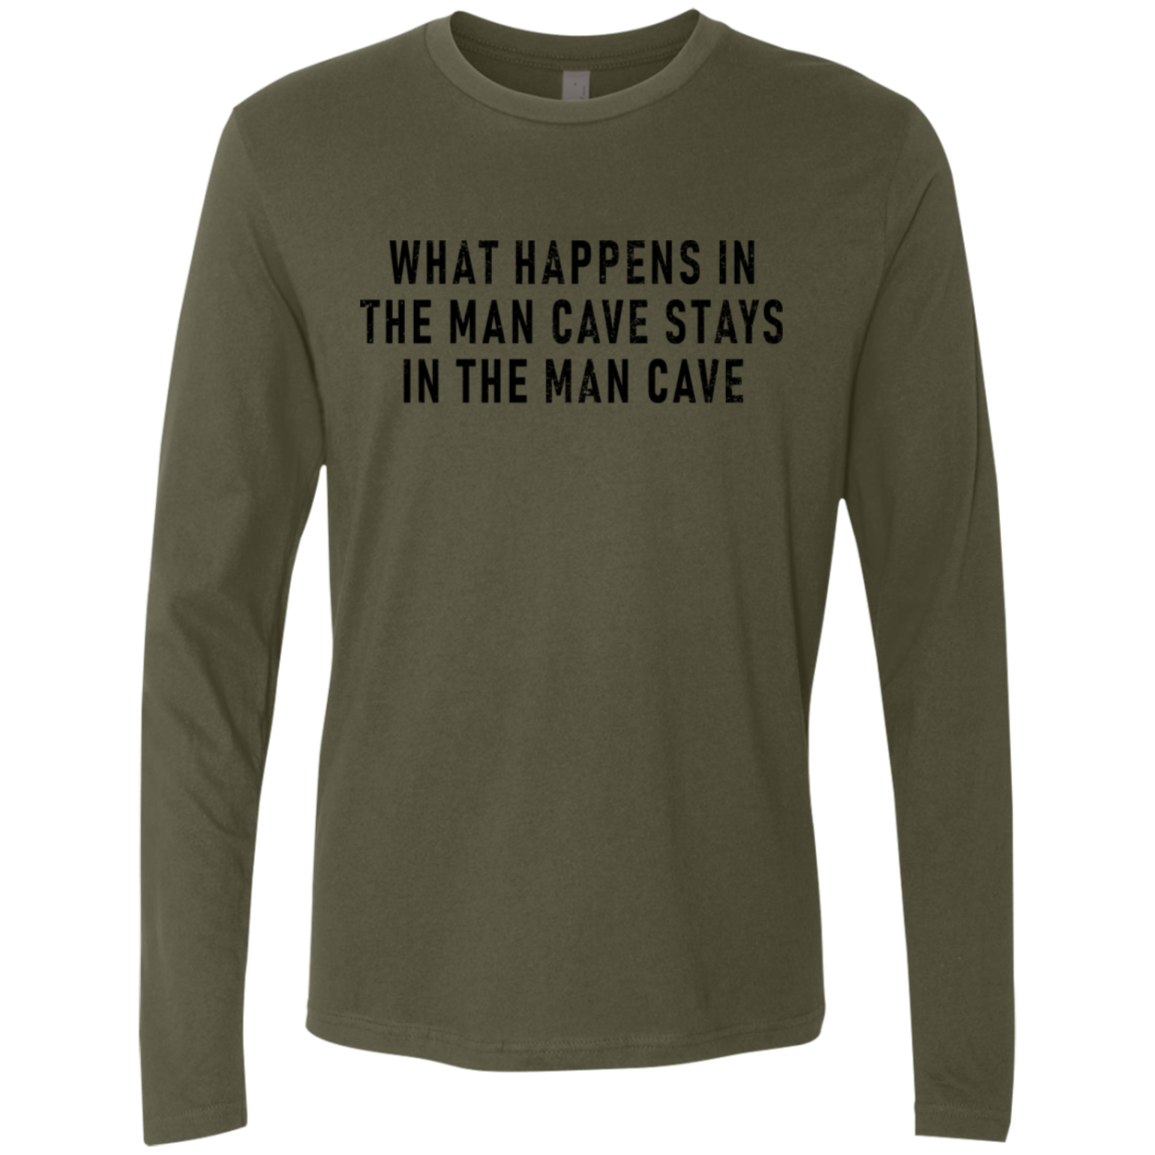 What Happens In The Man Cave Stays In The Man Cave Men's Long Sleeve Tee